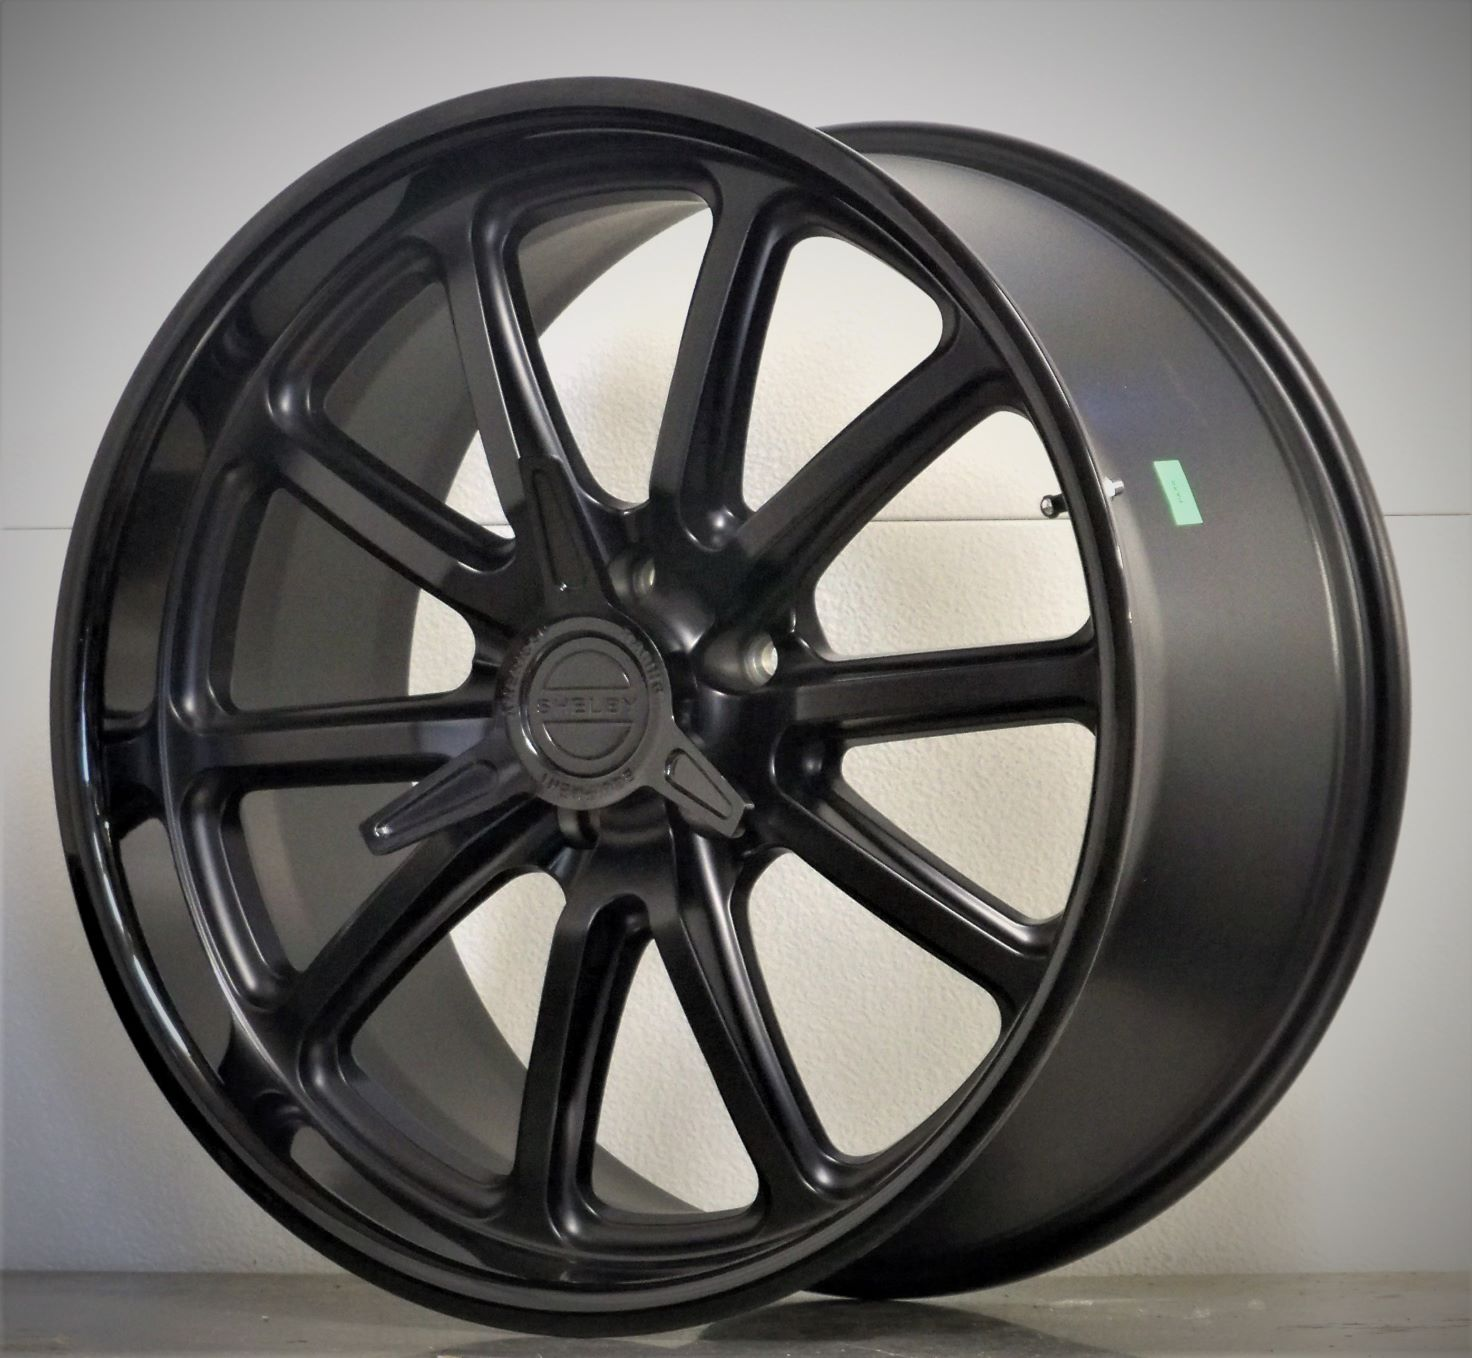 20s set of 4 RSB US Mags Shelby spinner Satin Black 05-20